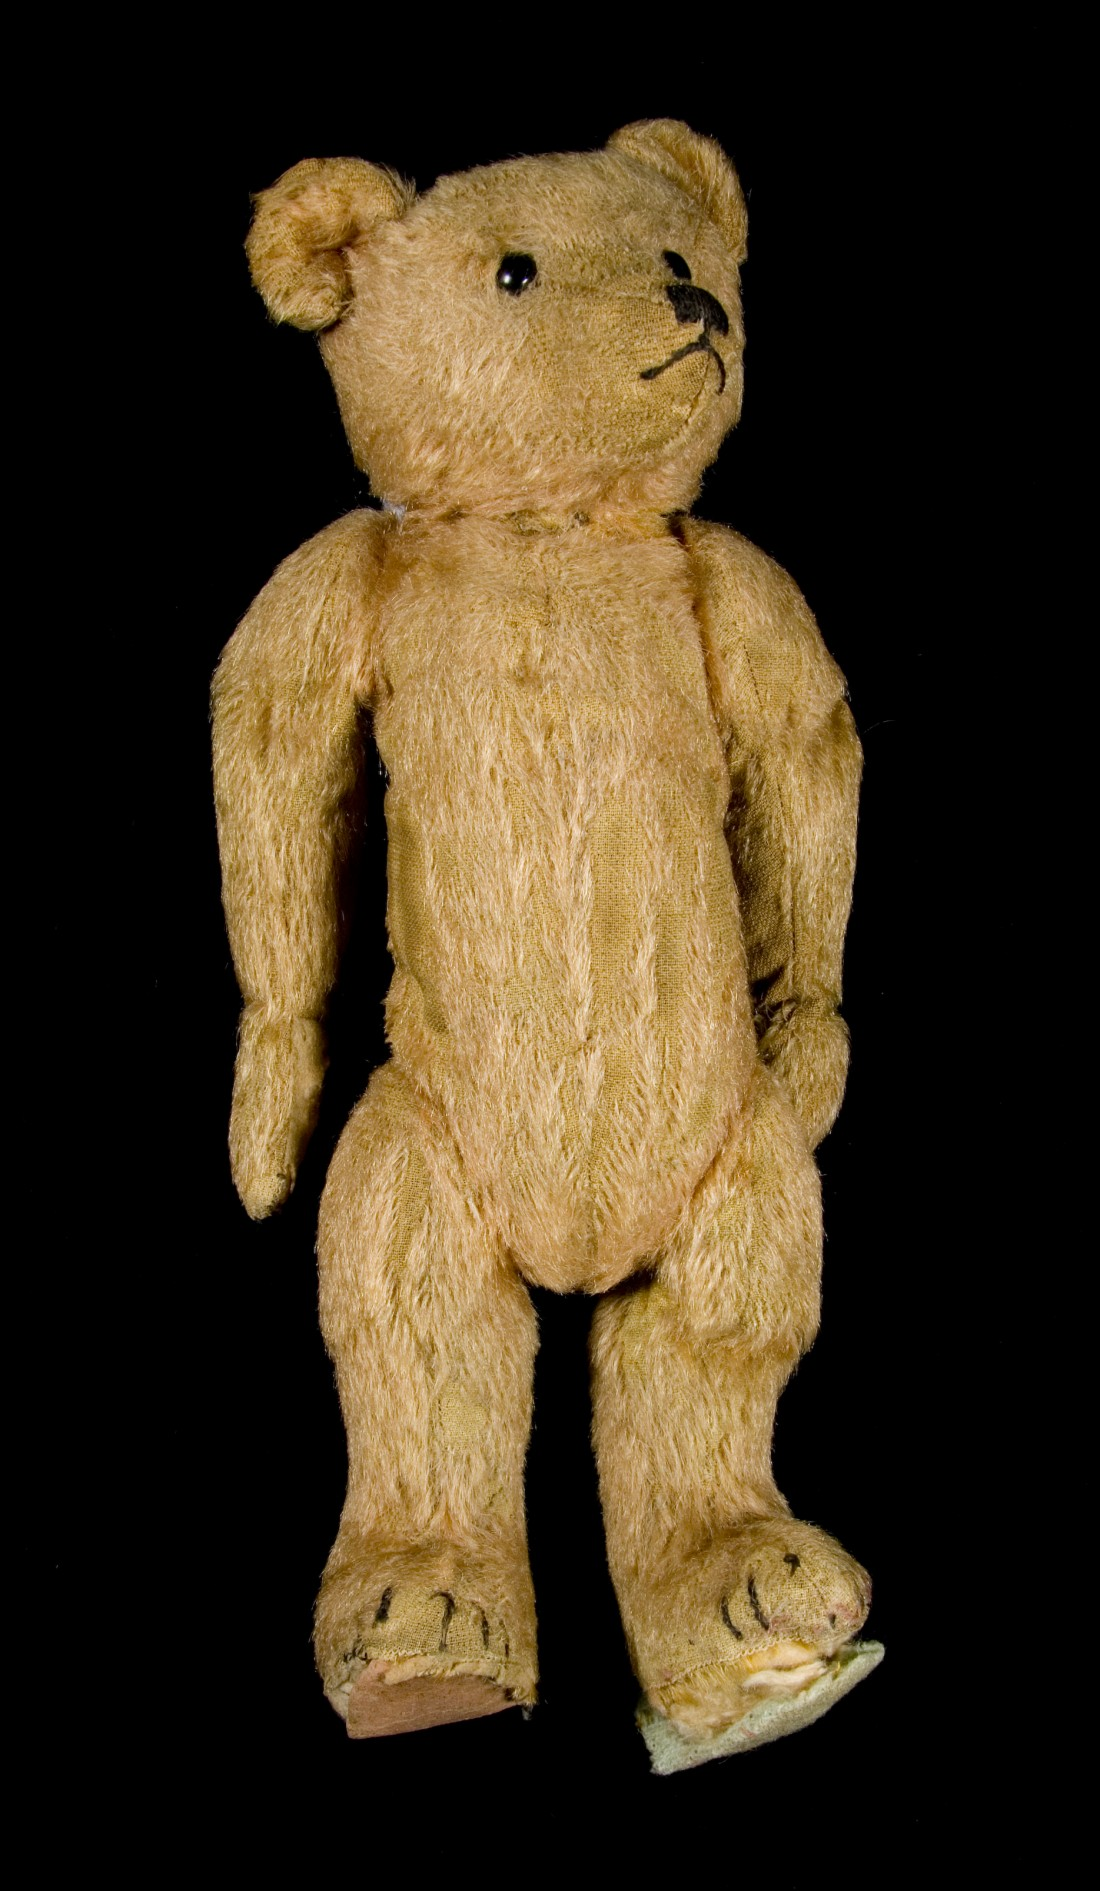 MA_I126614_TePapa_Teddy-Bear_full